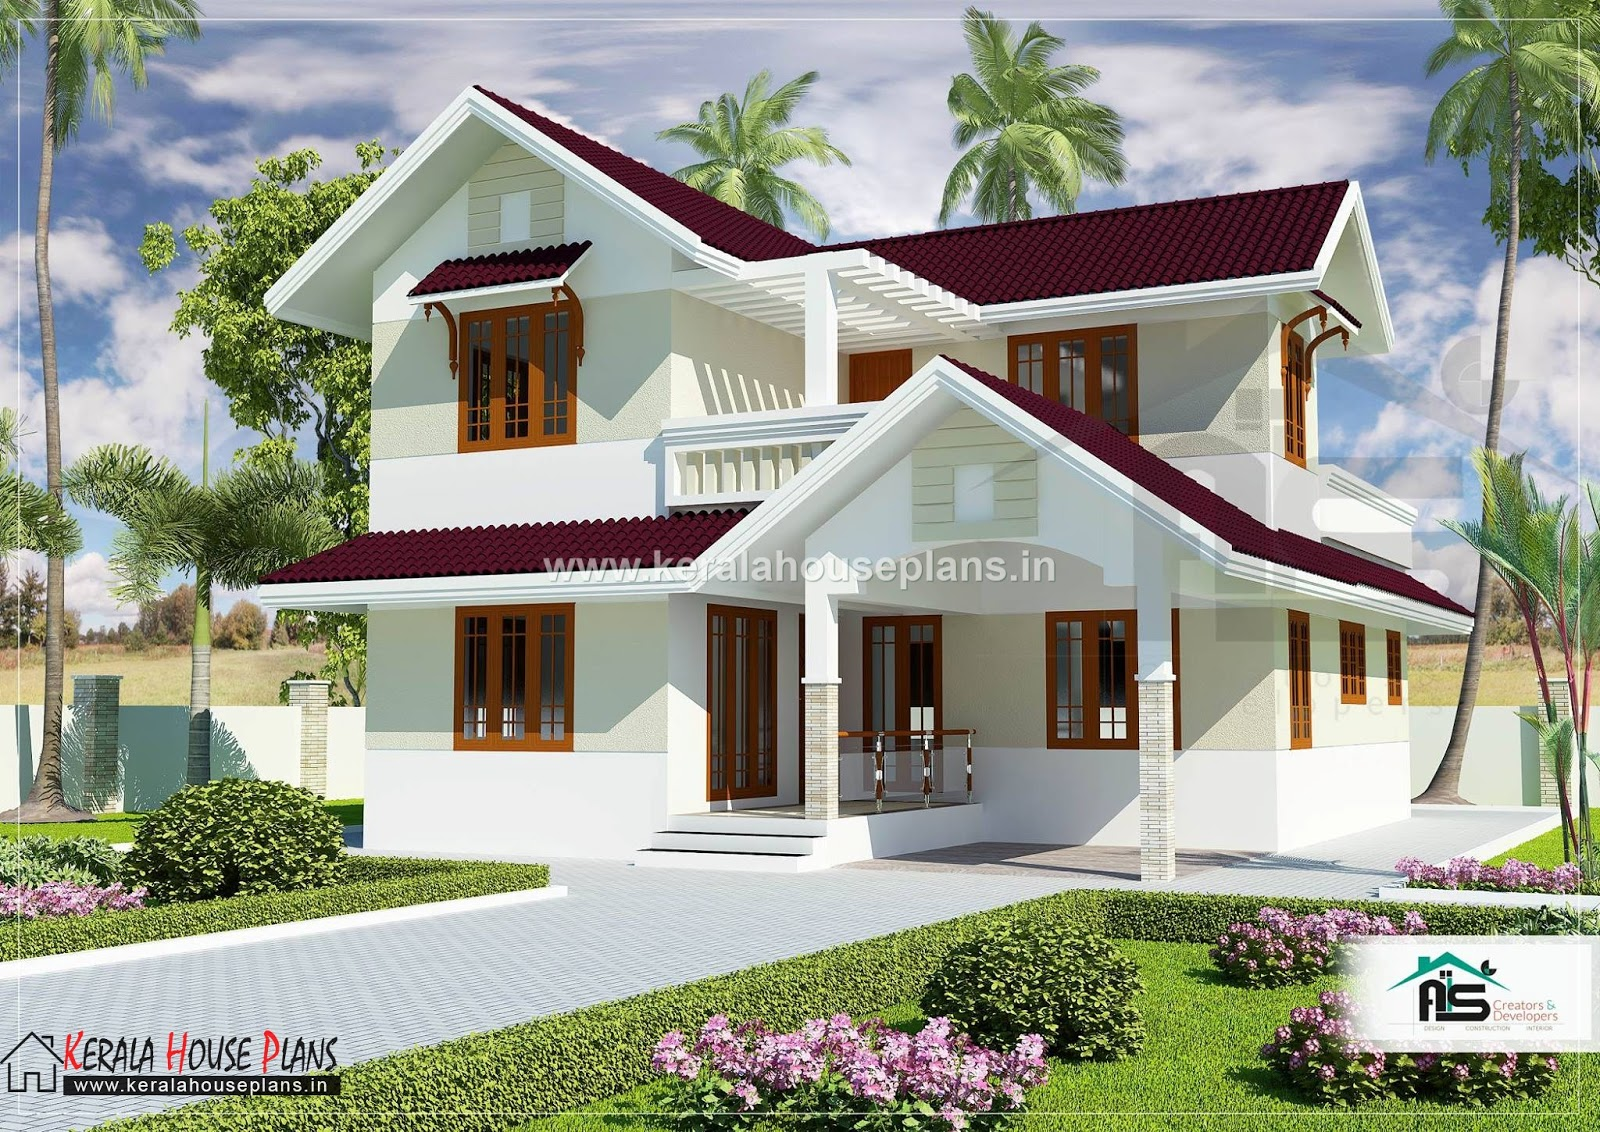 Kerala model house plans with elevation 1829 sqft kerala for Kerala model house photos with details